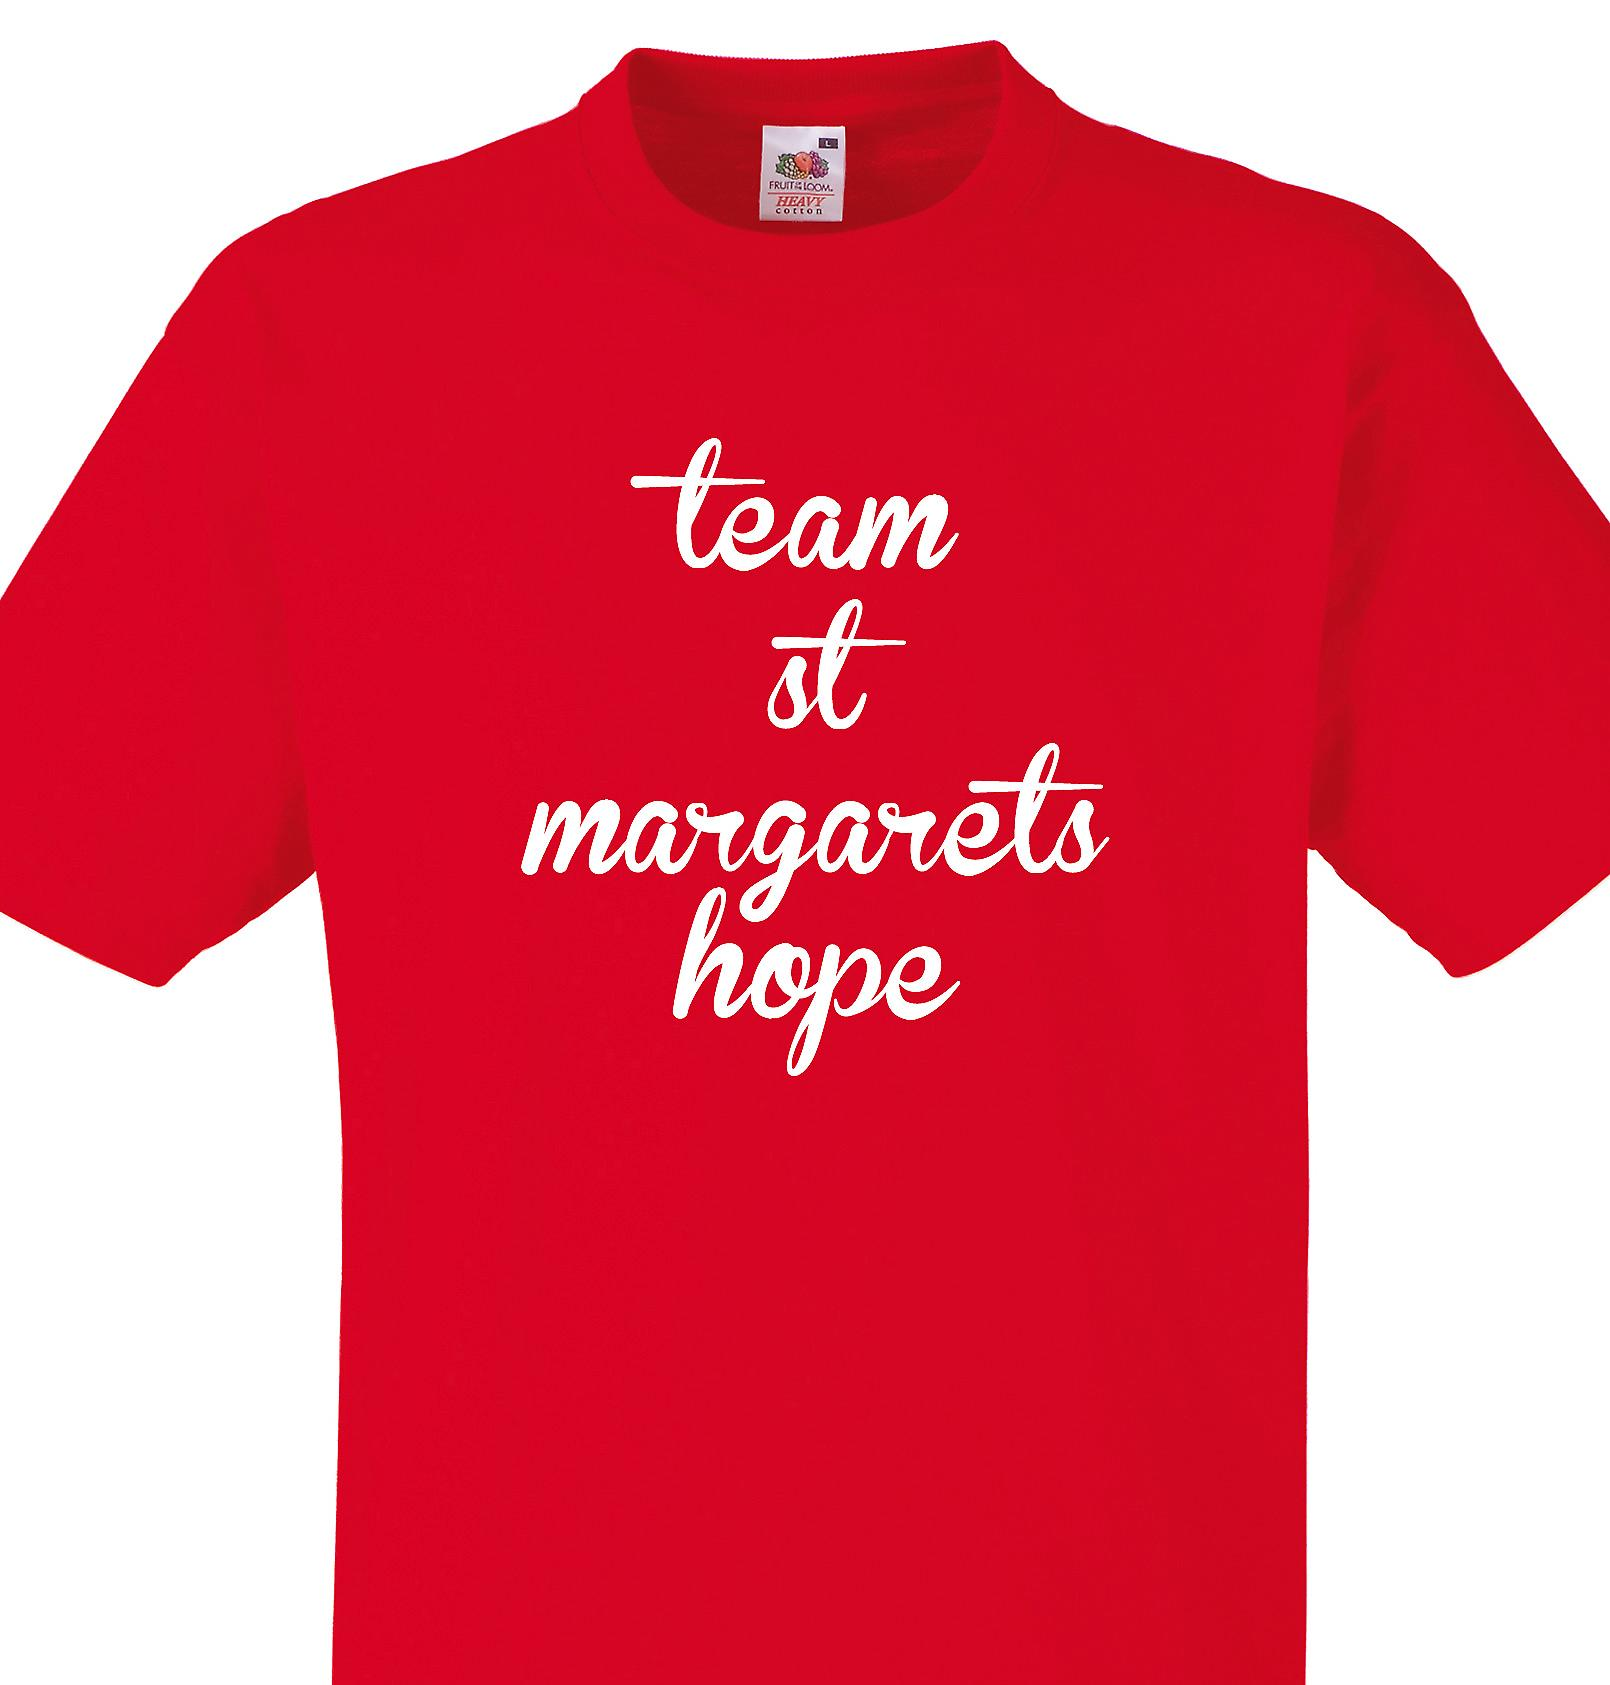 Team St margarets hope Red T shirt